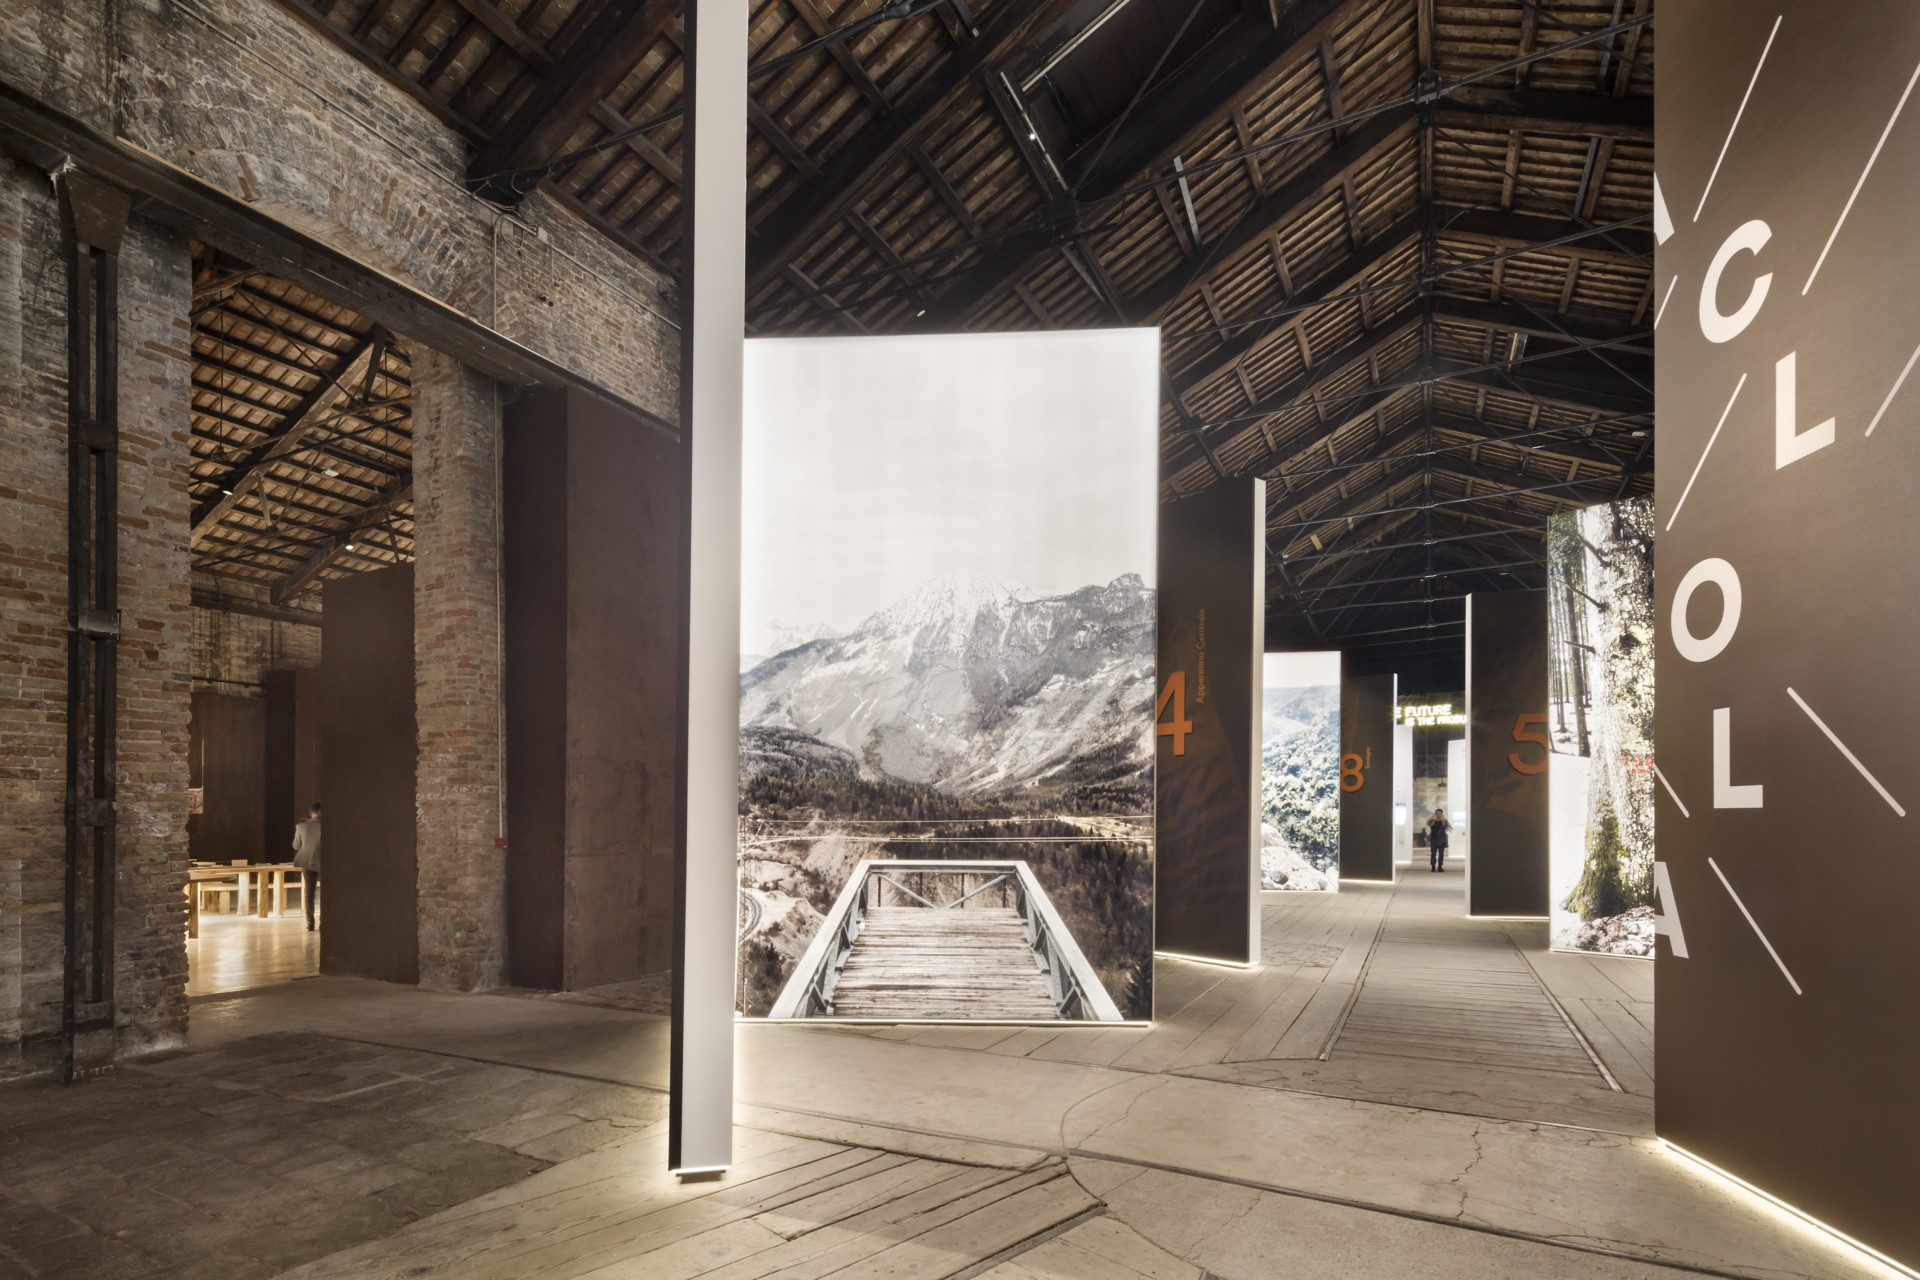 Architecture biennale: from venice to berlin with fab architectural